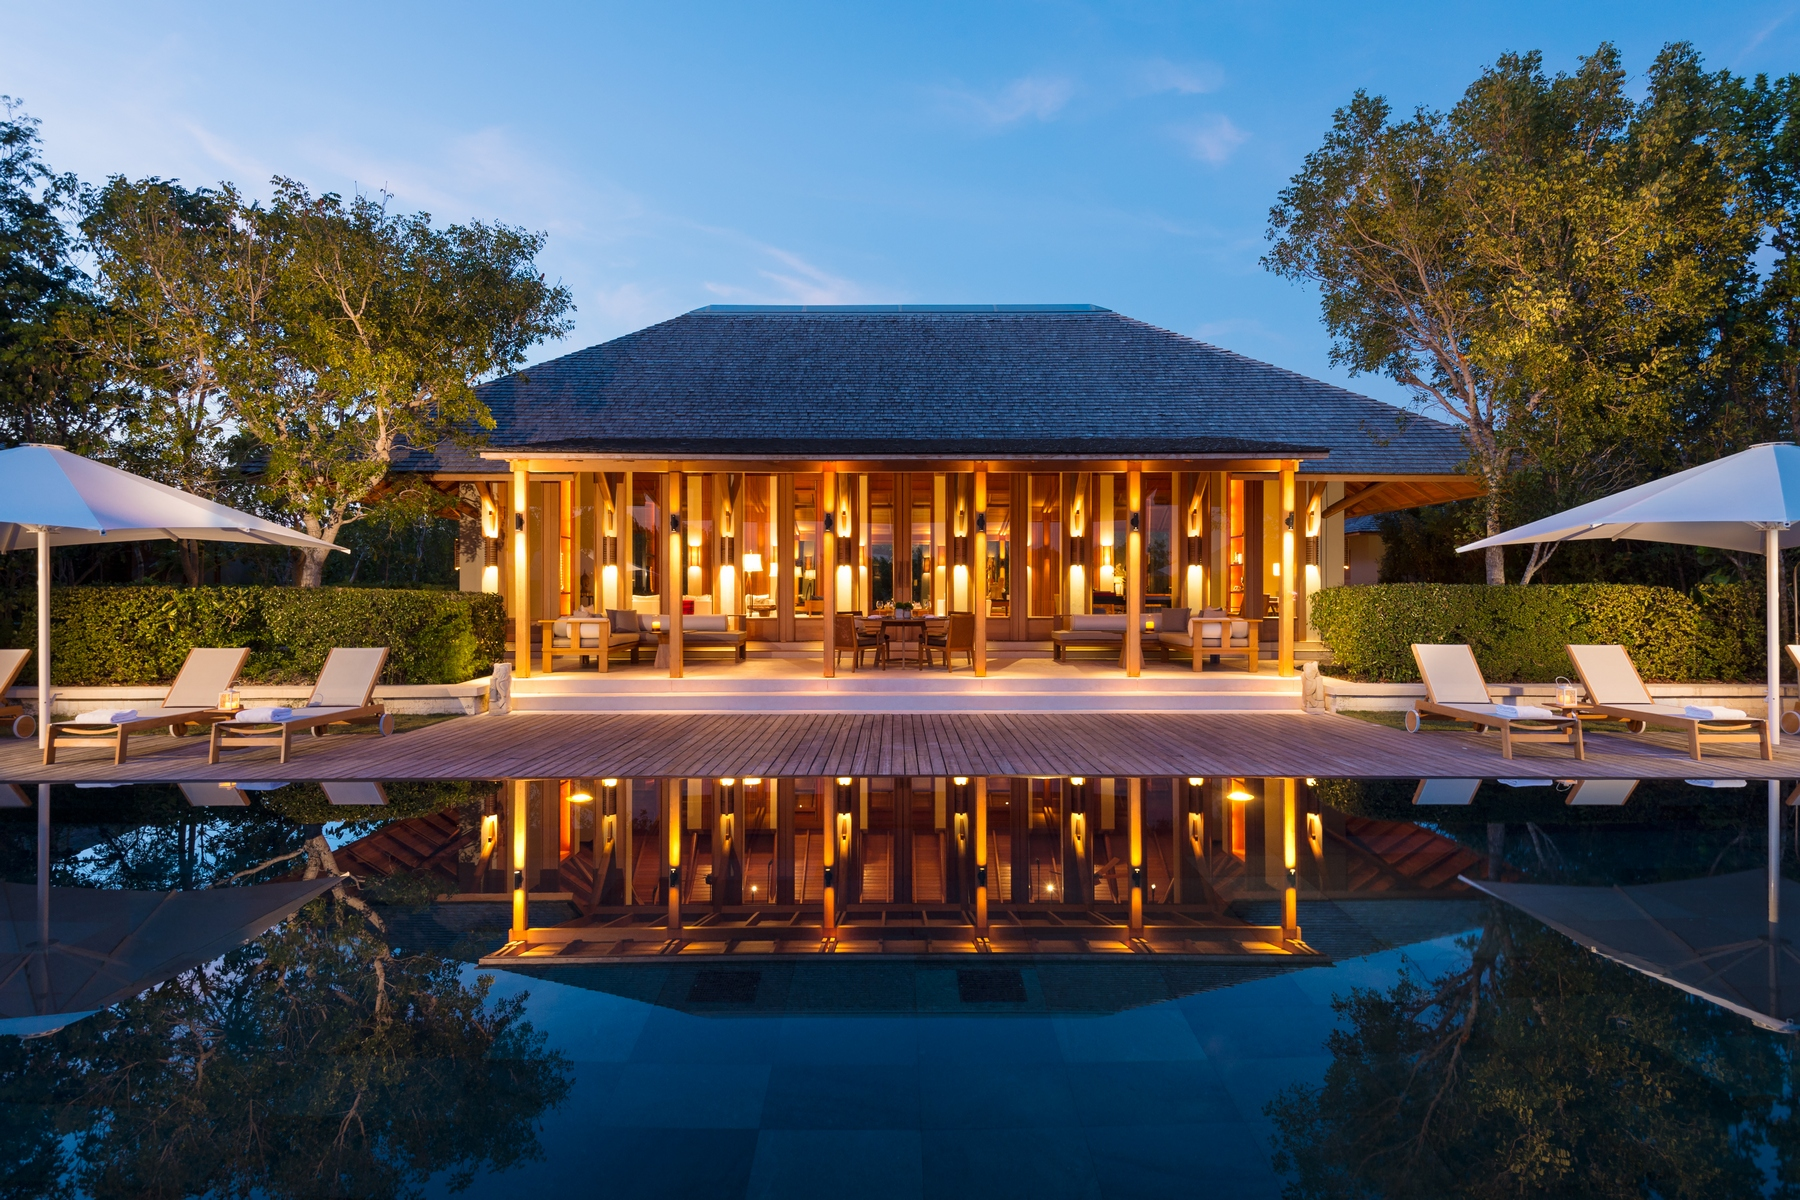 This $10 Million Villa in Turks and Caicos Offers the Ultimate in Luxury—and Serenity